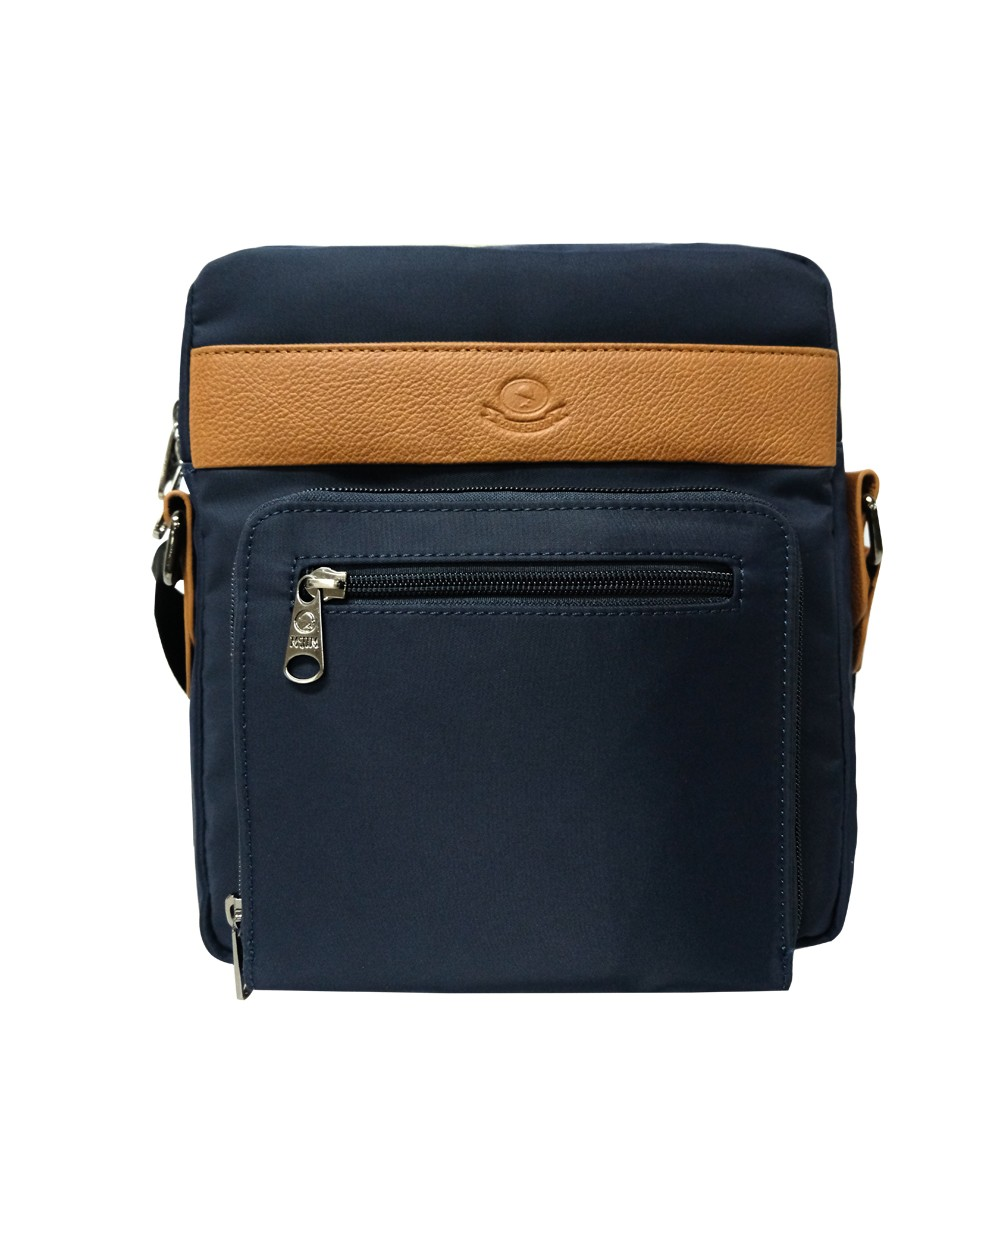 Cyrill-McJIM Messenger Bag